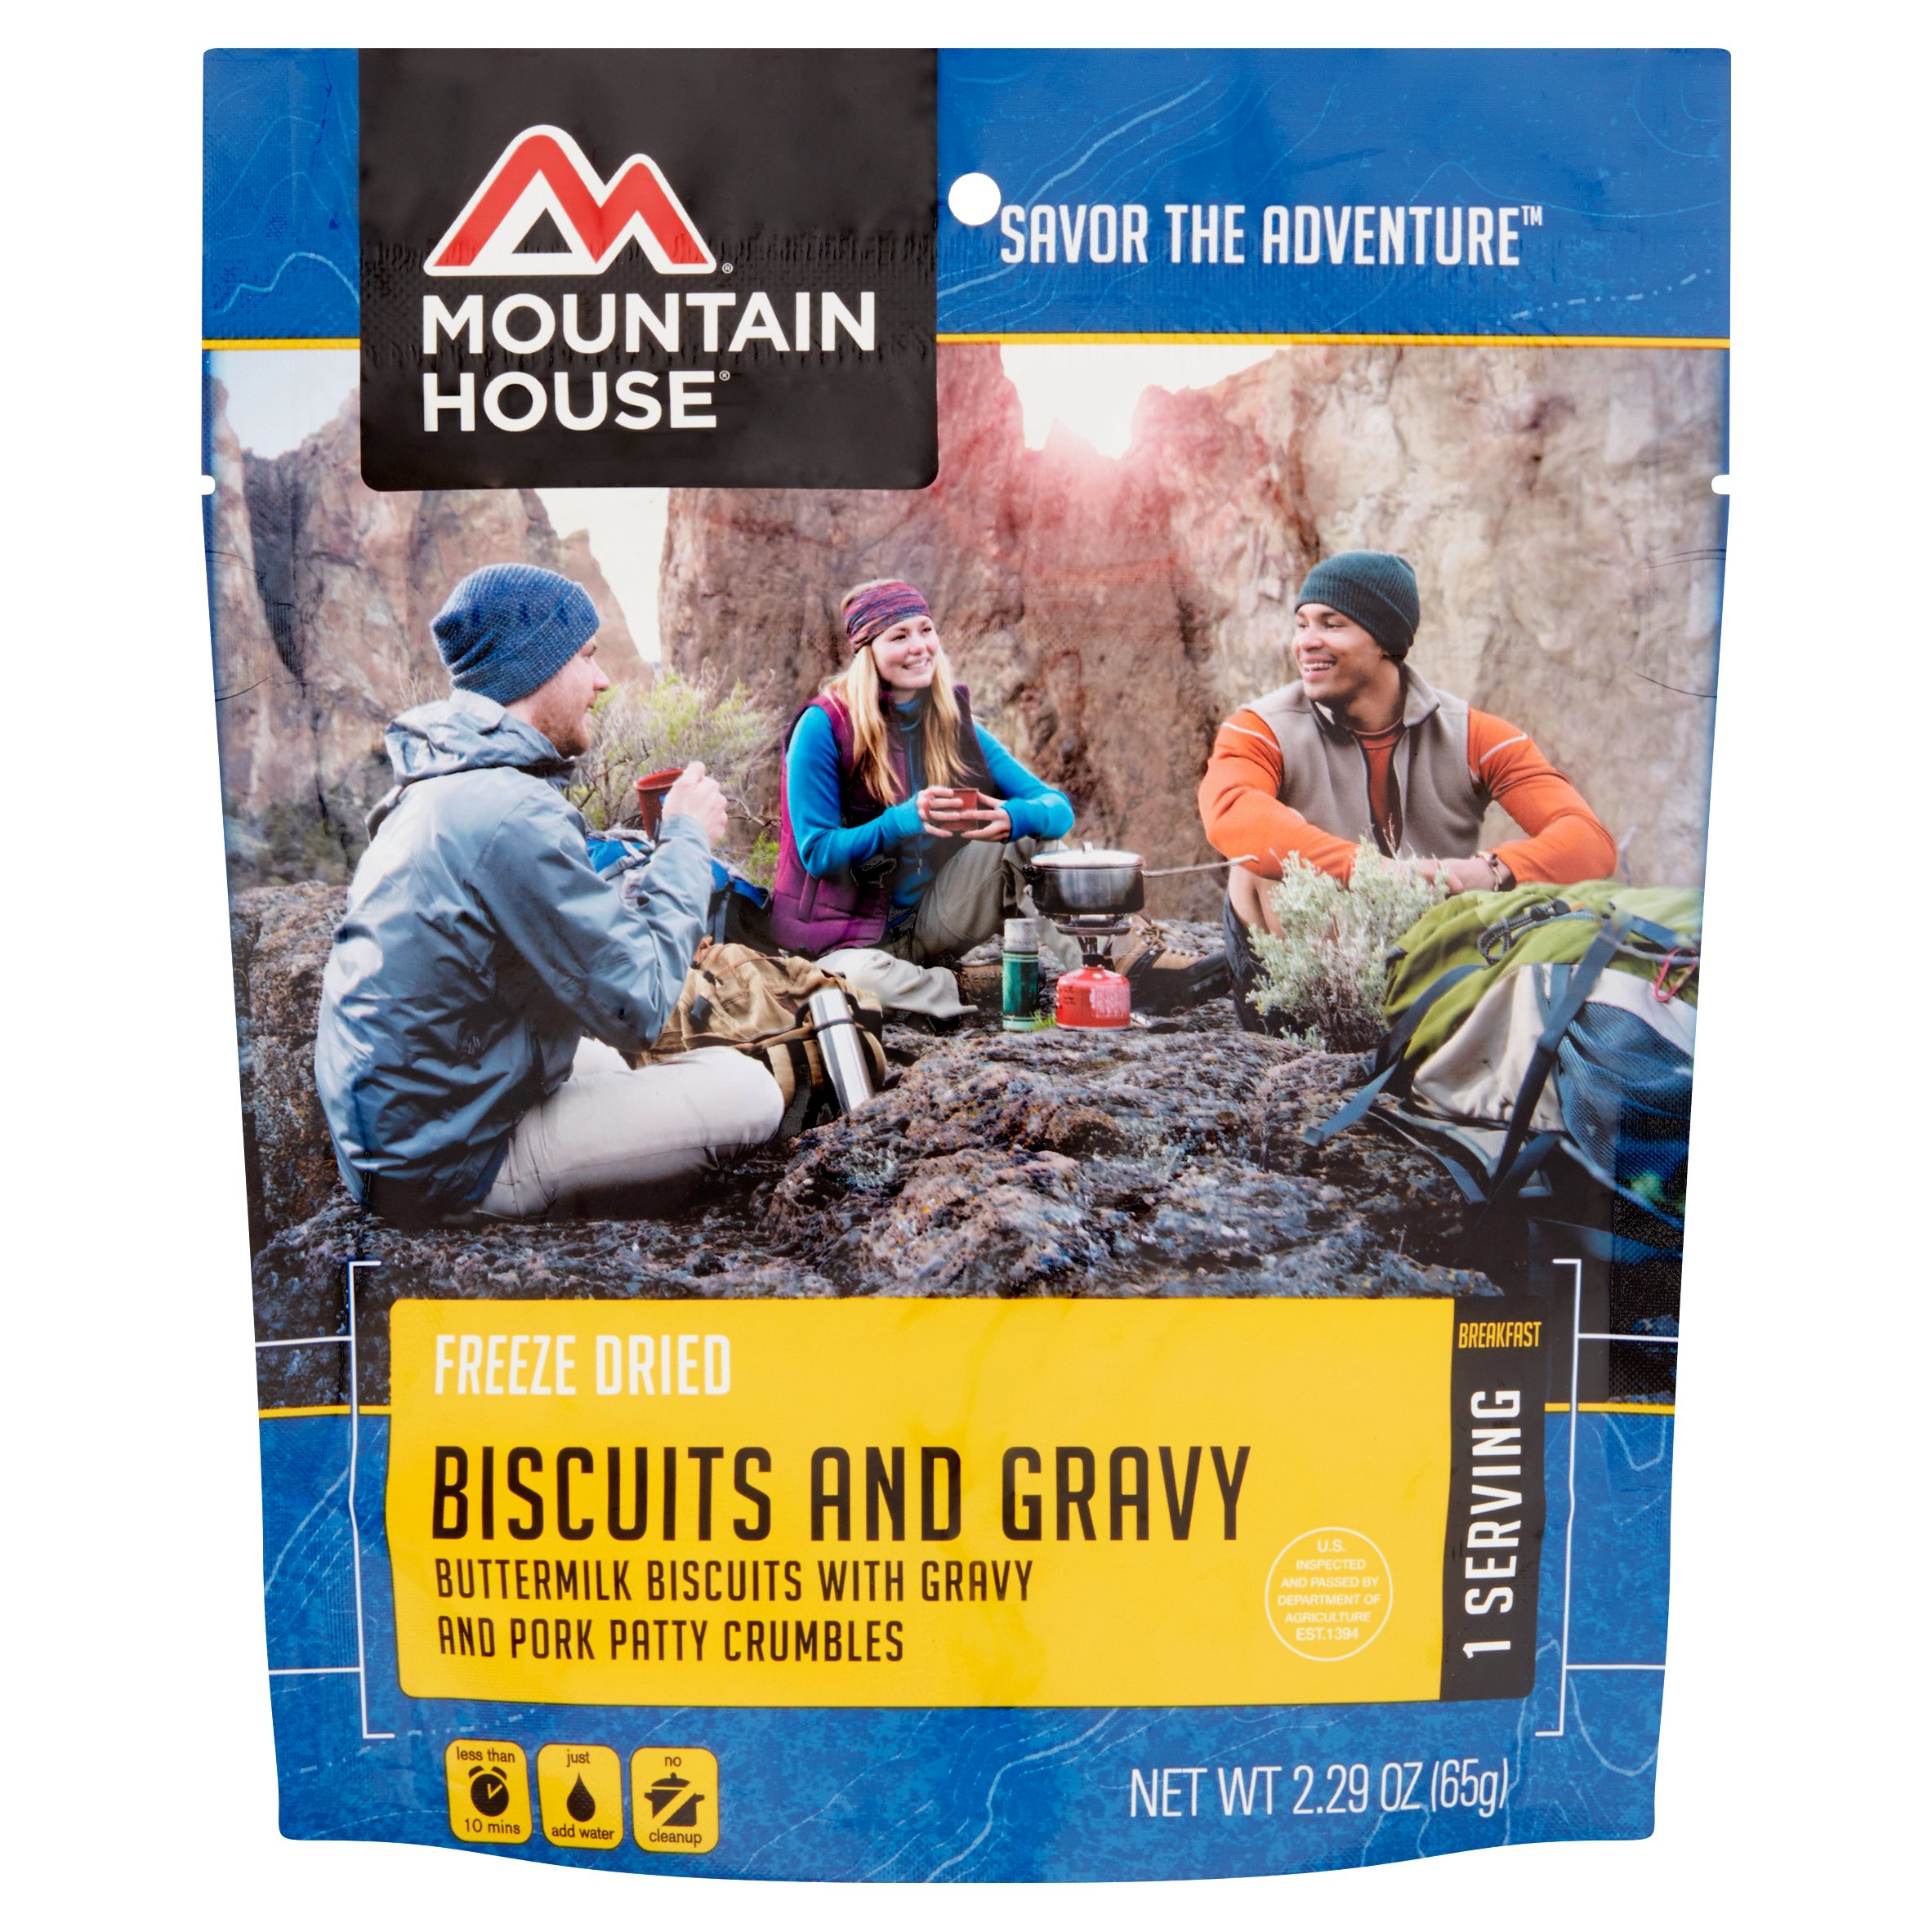 Mountain House Savor the Adventure Freeze Dried Biscuits and Gravy, 2.29 oz by Mountain House is a division of Oregon Freeze Dry, Inc.